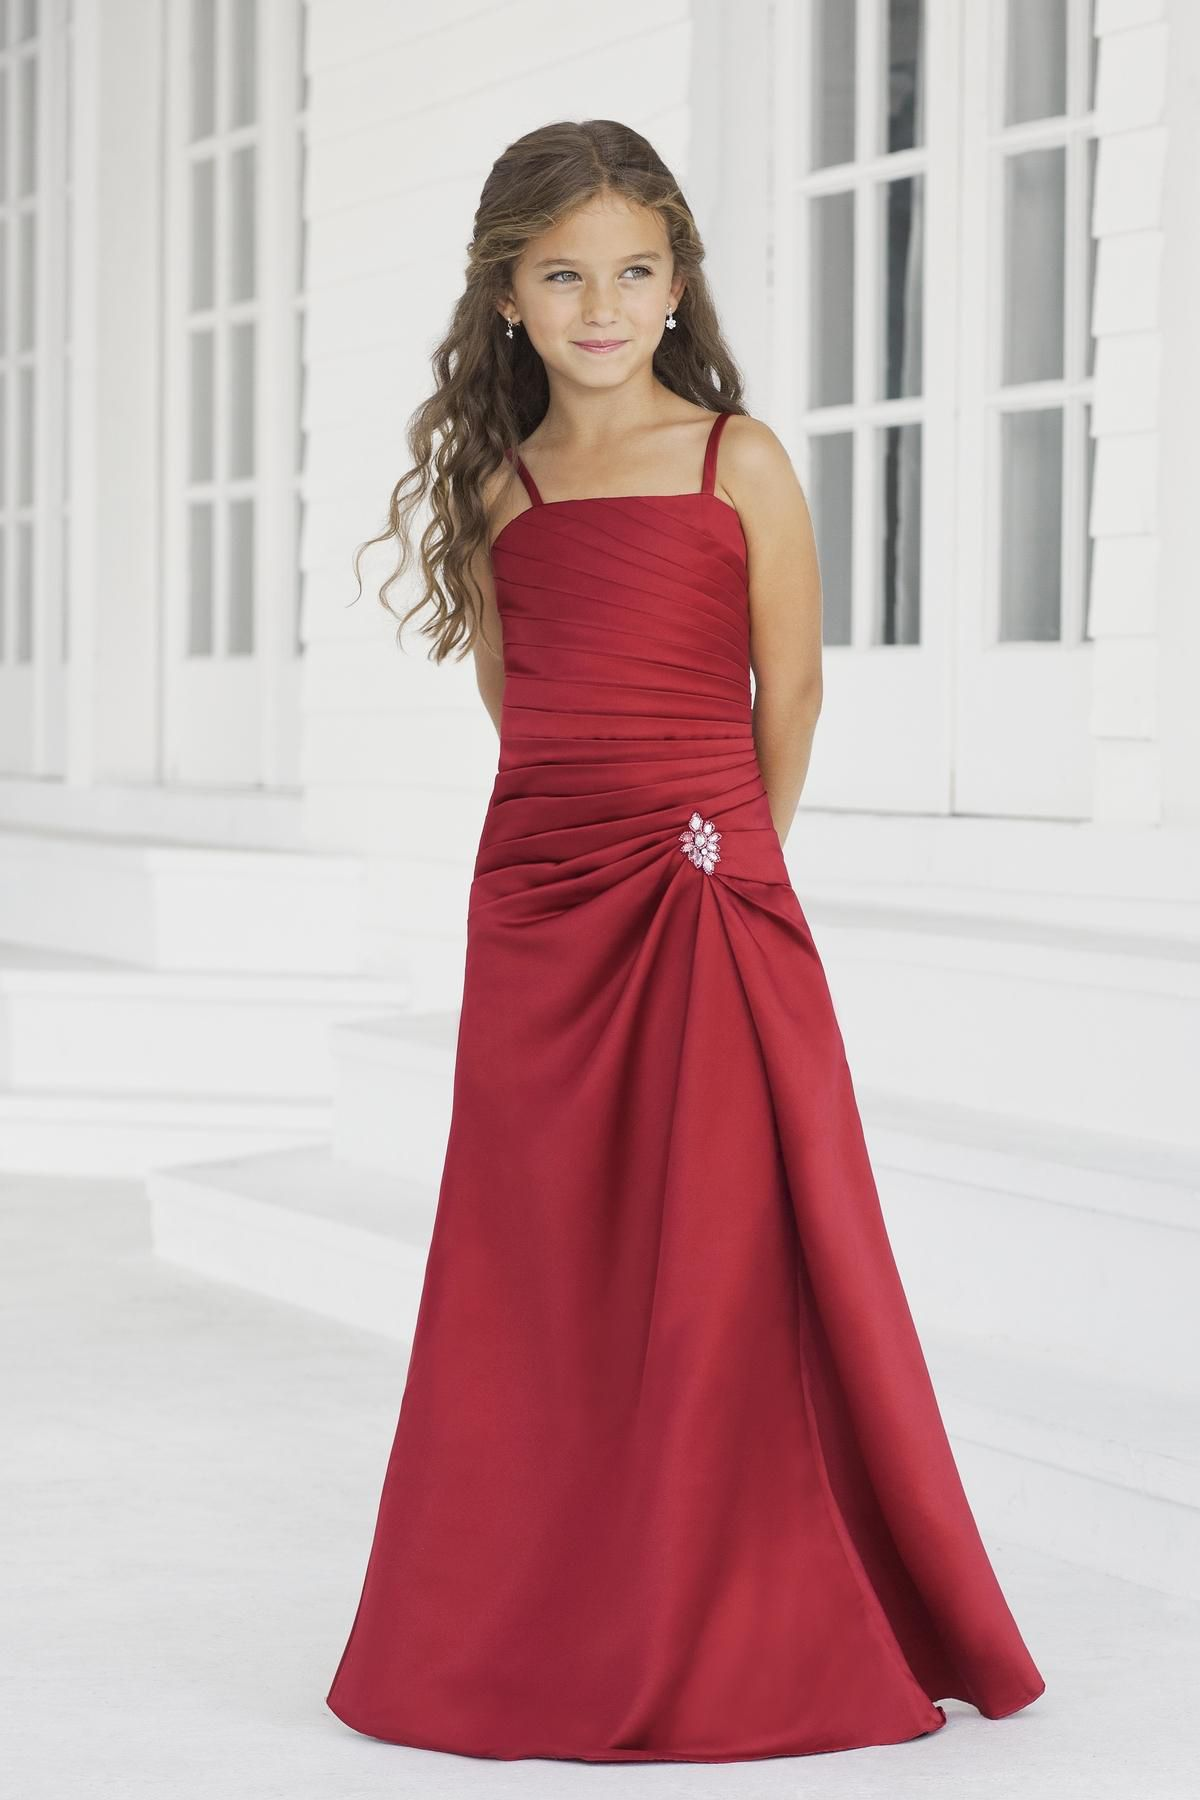 Nectreo linha a alas finas contas franzido comprido cetim junior mia absolutely loves this dress for the quince satin a lineruchingsweetheart style 38 junior bridesmaid dress by alexia designs ombrellifo Choice Image